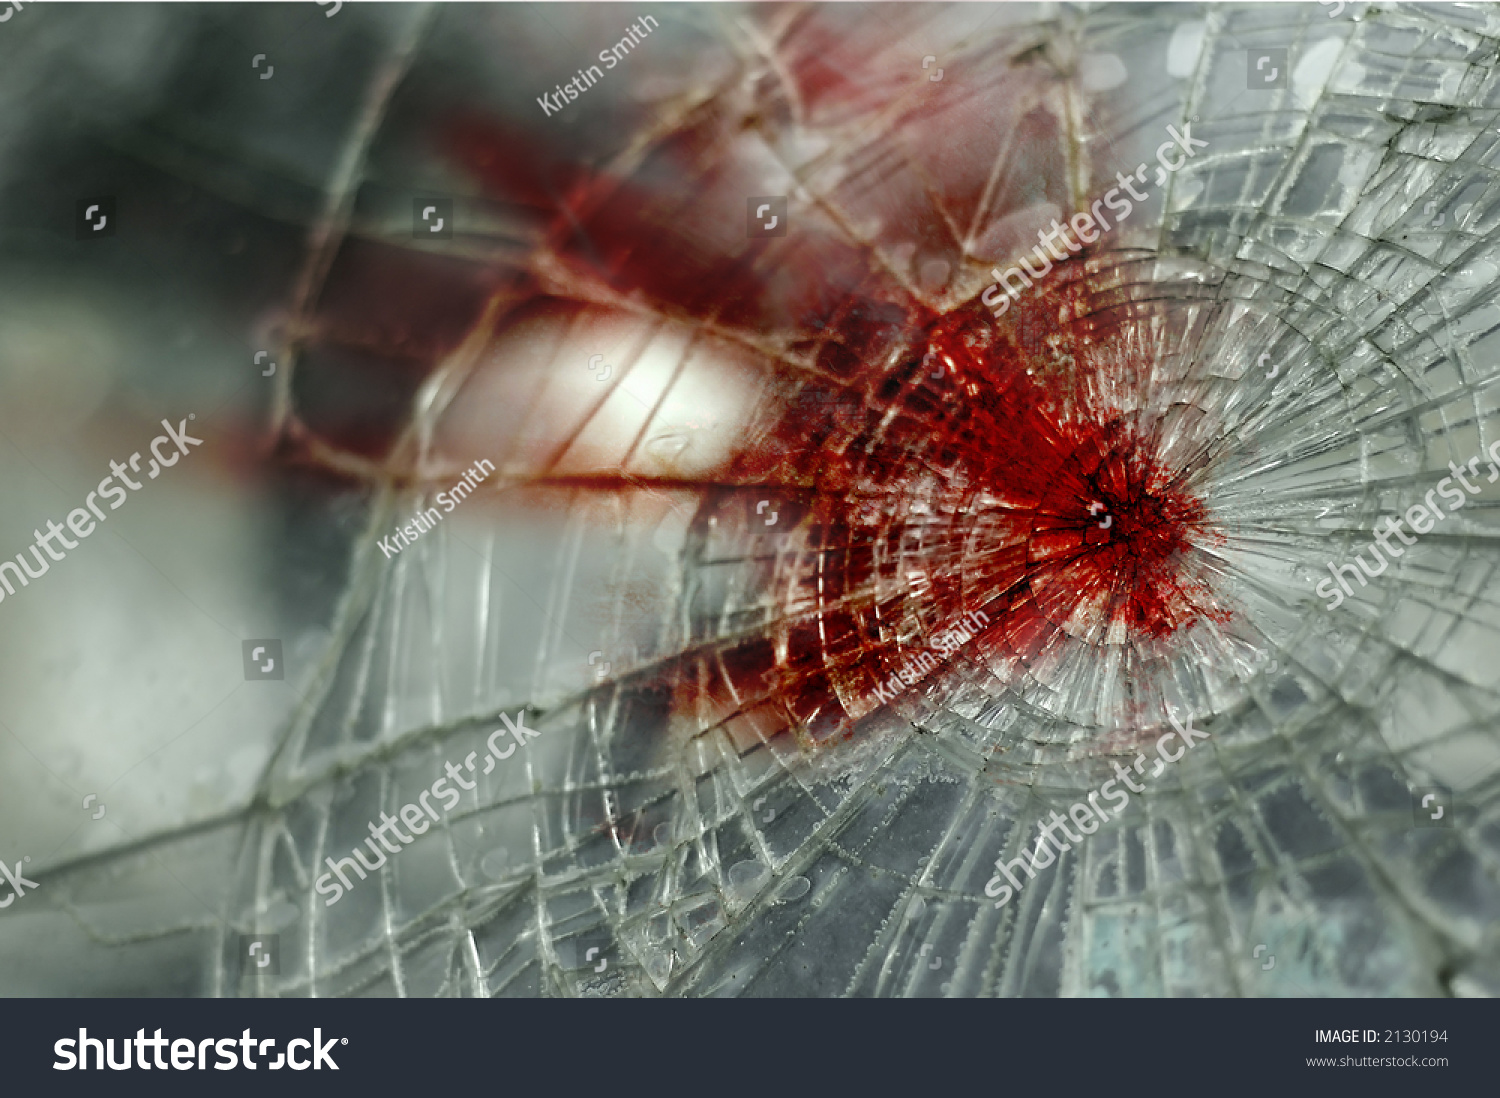 Slikovni rezultat za broken car windshield blood